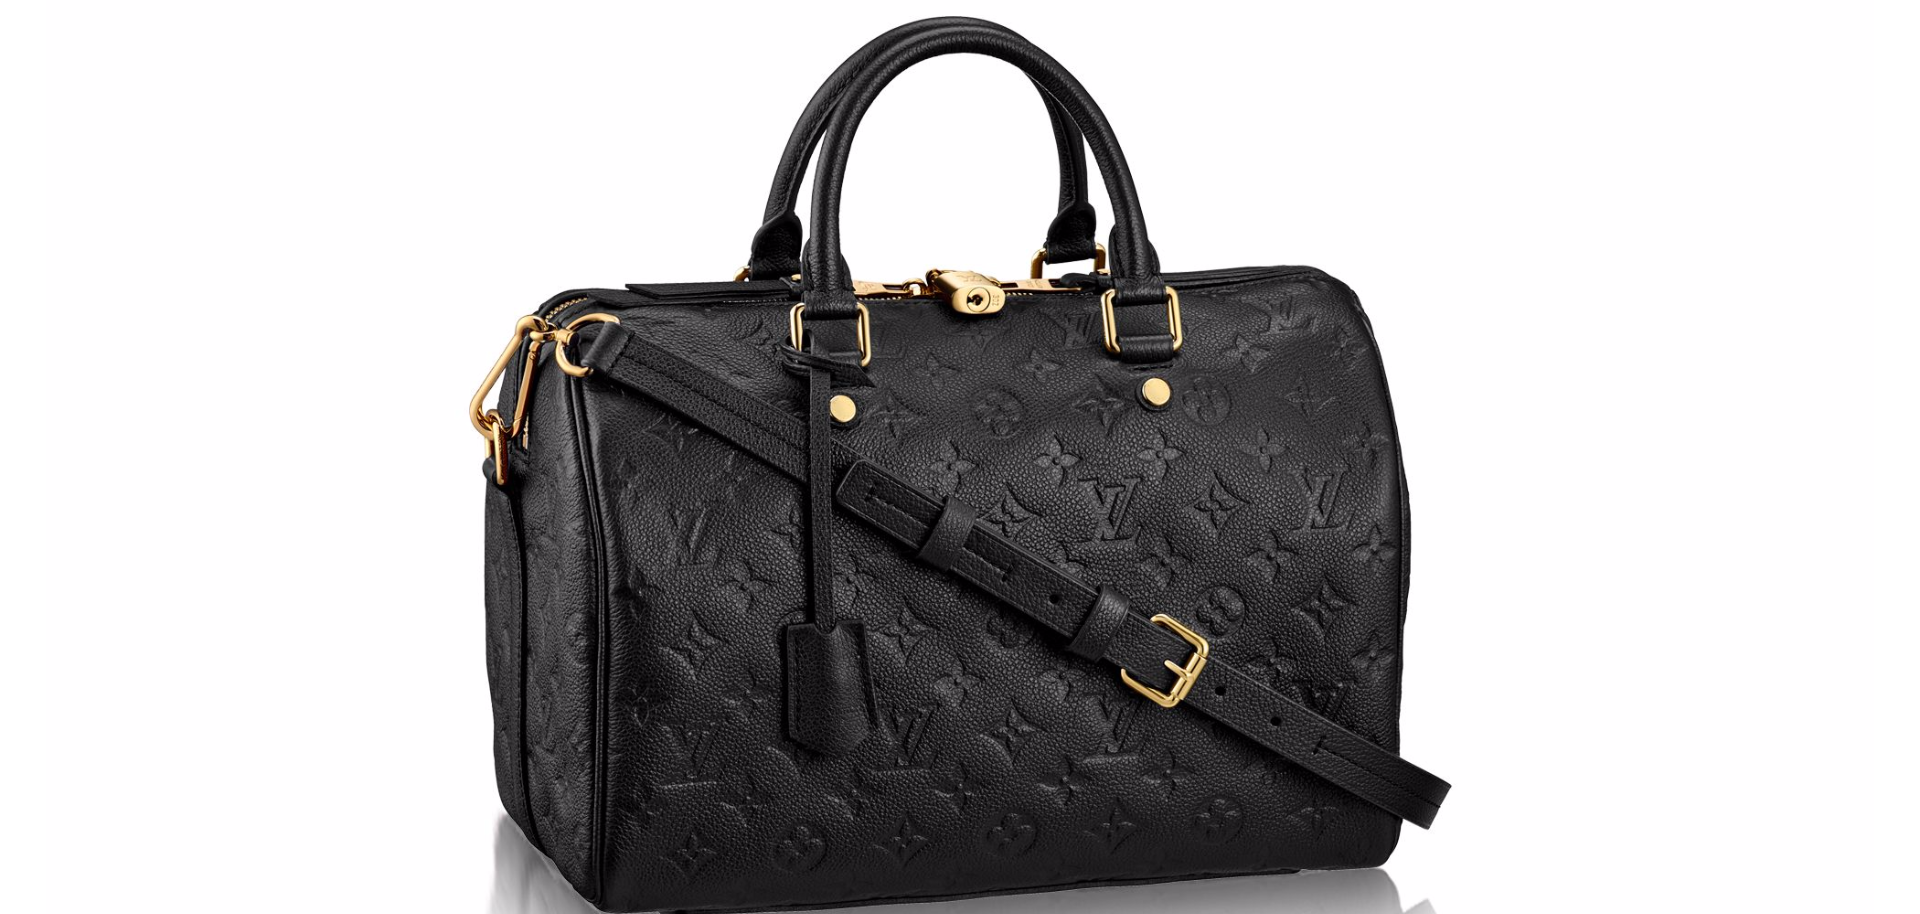 Sell Louis Vuitton Black Speedy 30 Empriente Boca Raton